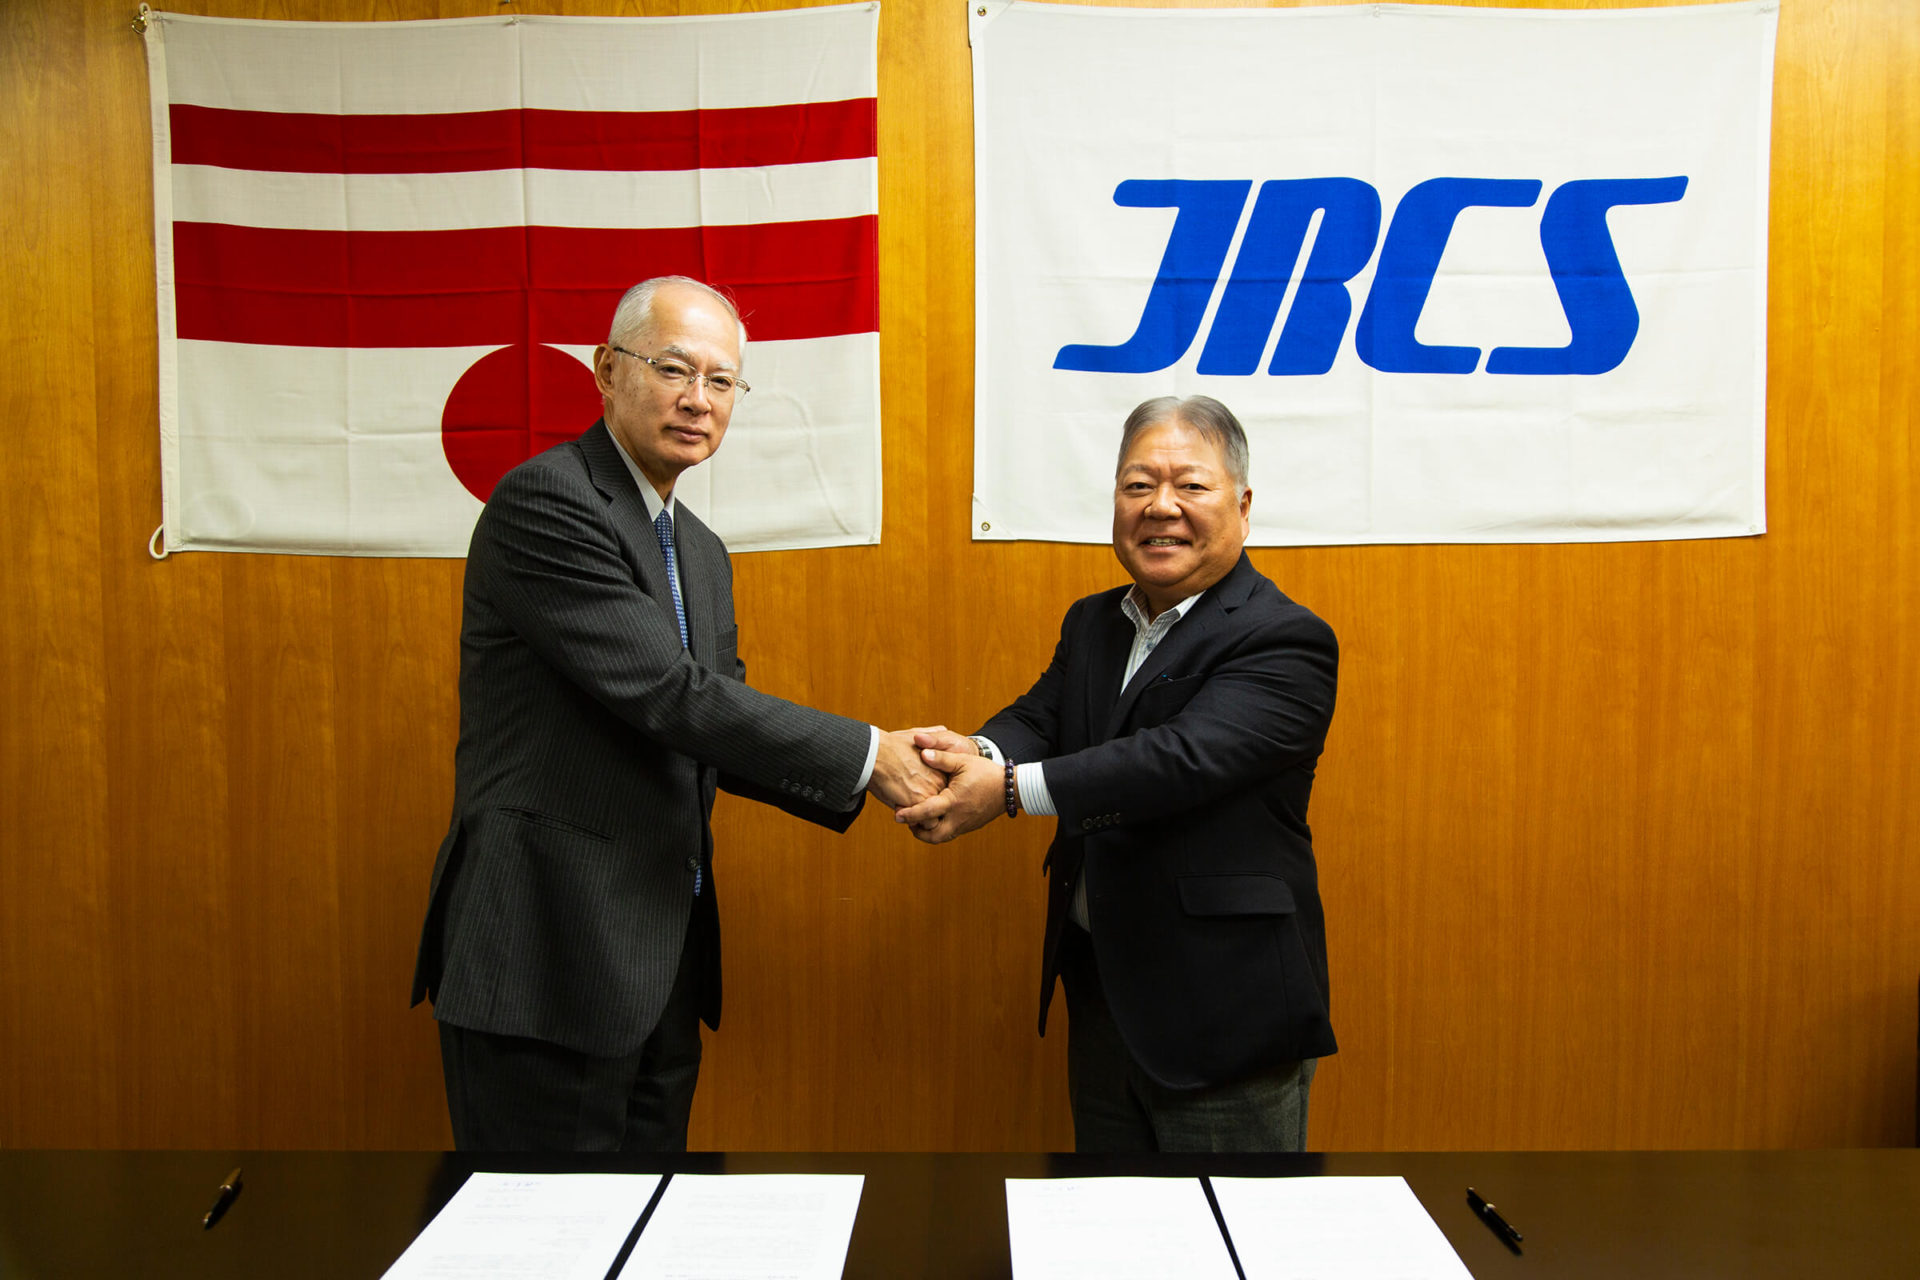 The Transformation of Japan's Shipping and Marine Industries Hankyu Ferry and JRCS A cooperation in promoting a digital transformation of the shipping and marine industries